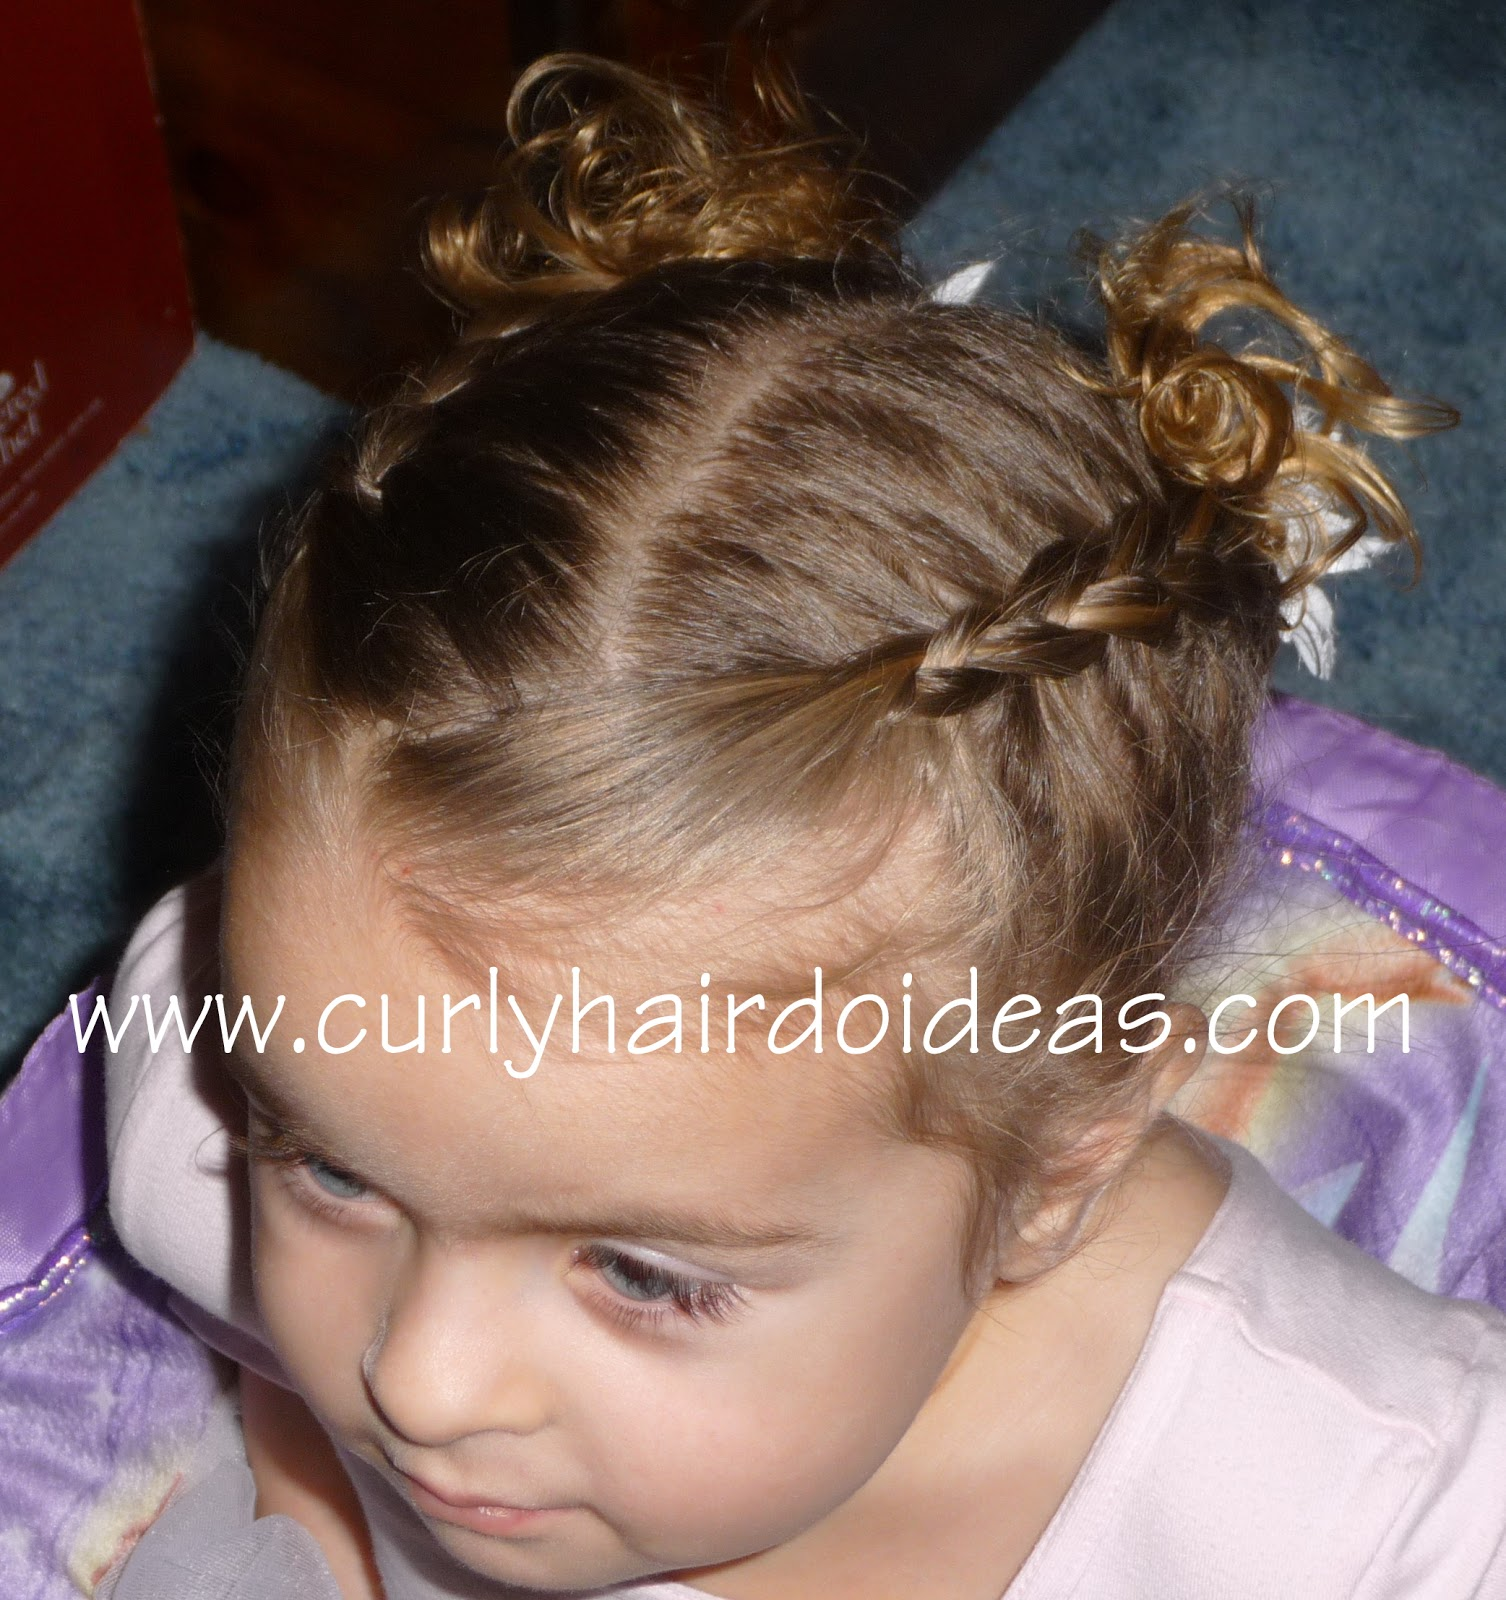 Curly Hairdo Ideas: Toddler Dance Hairstyle